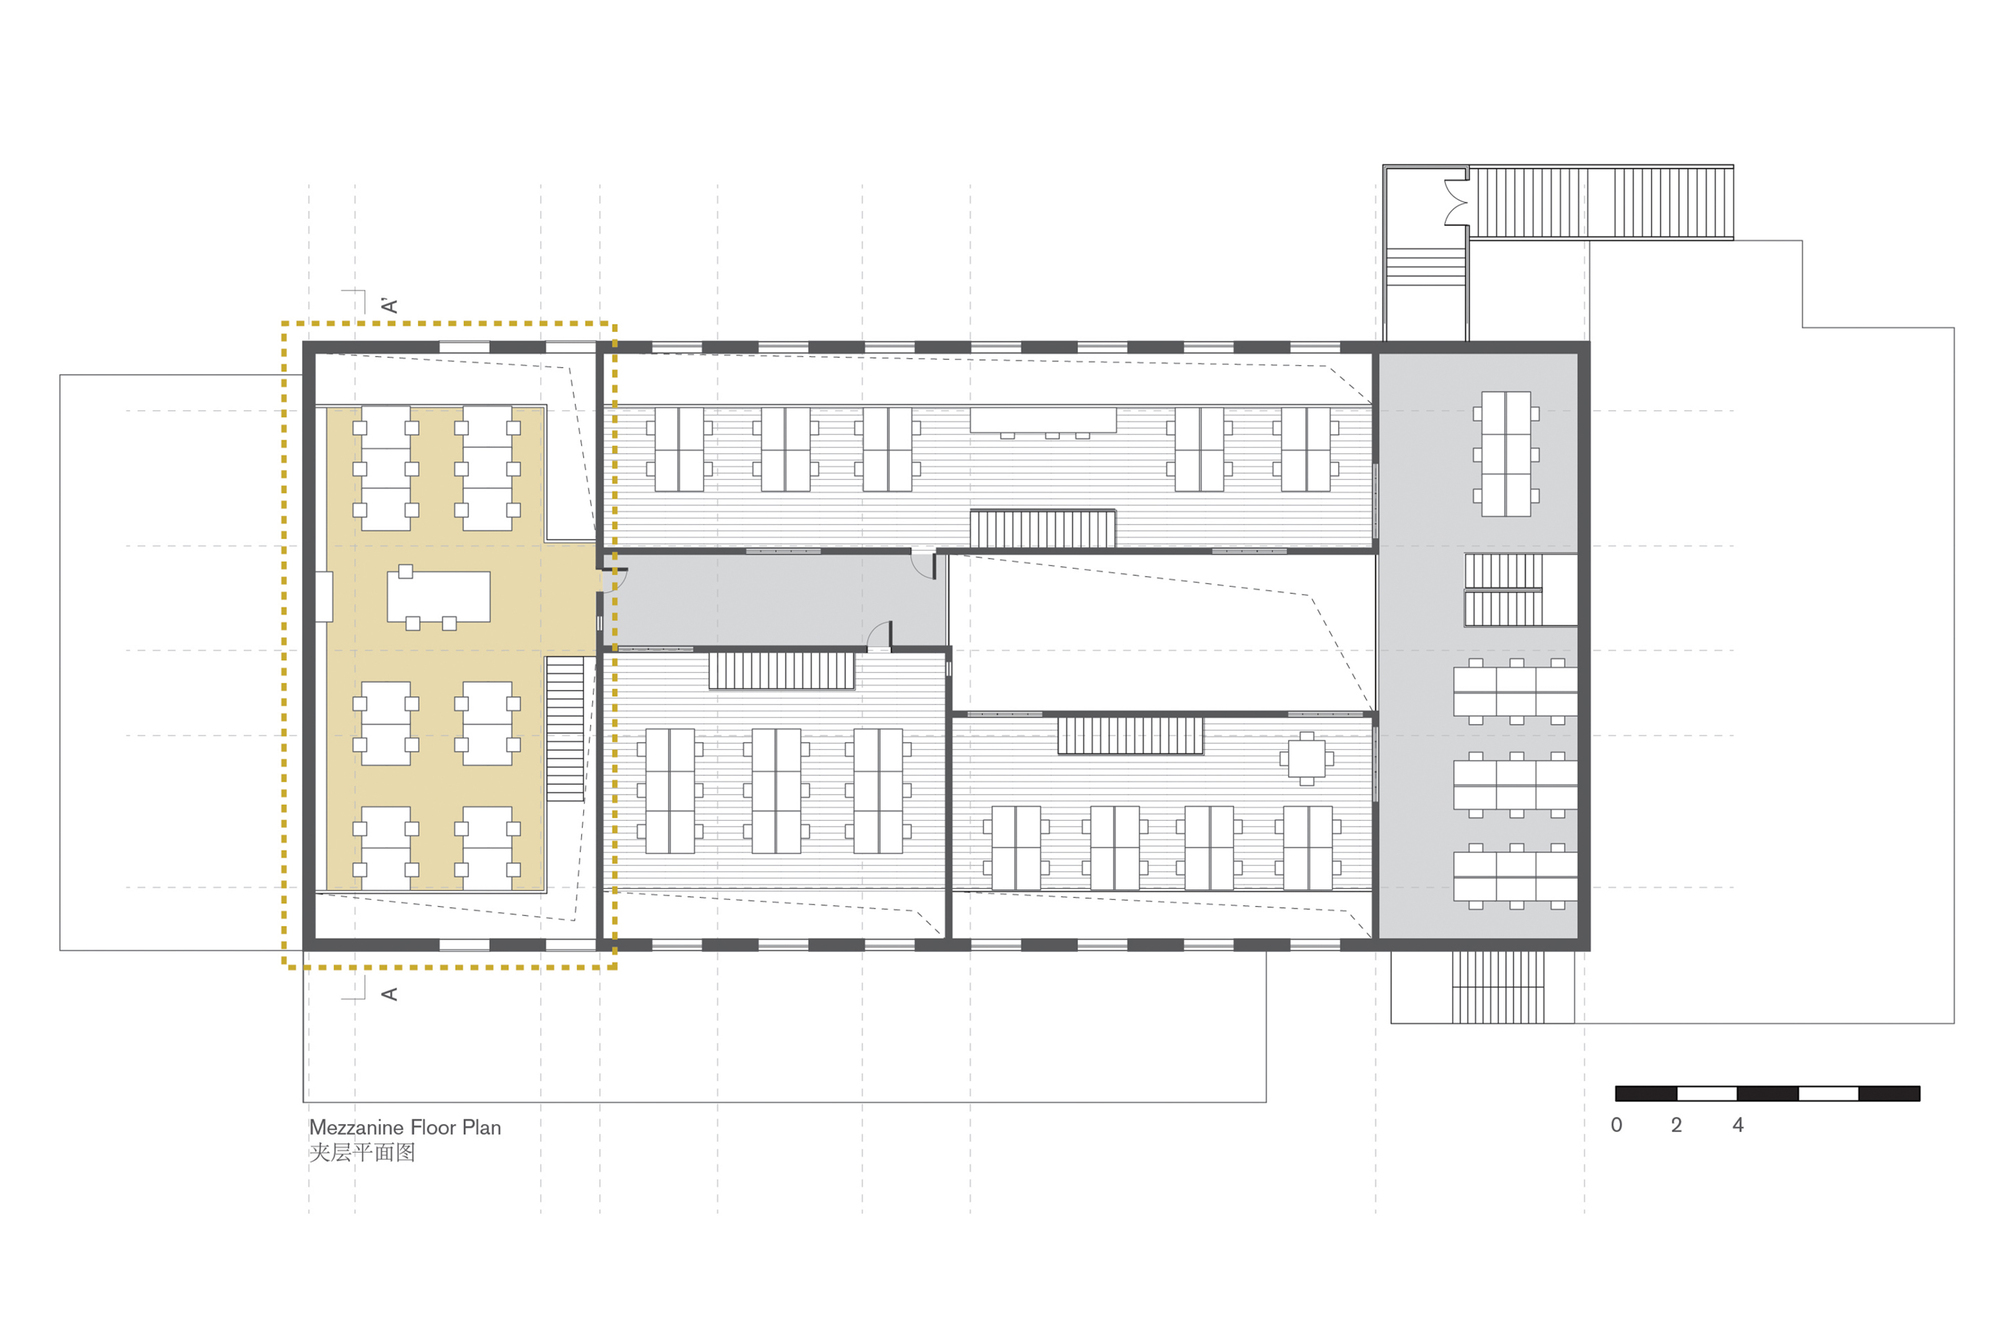 Crossboundaries' New Office / Crossboundaries. 16 / 20. Mezzanine Floor Plan